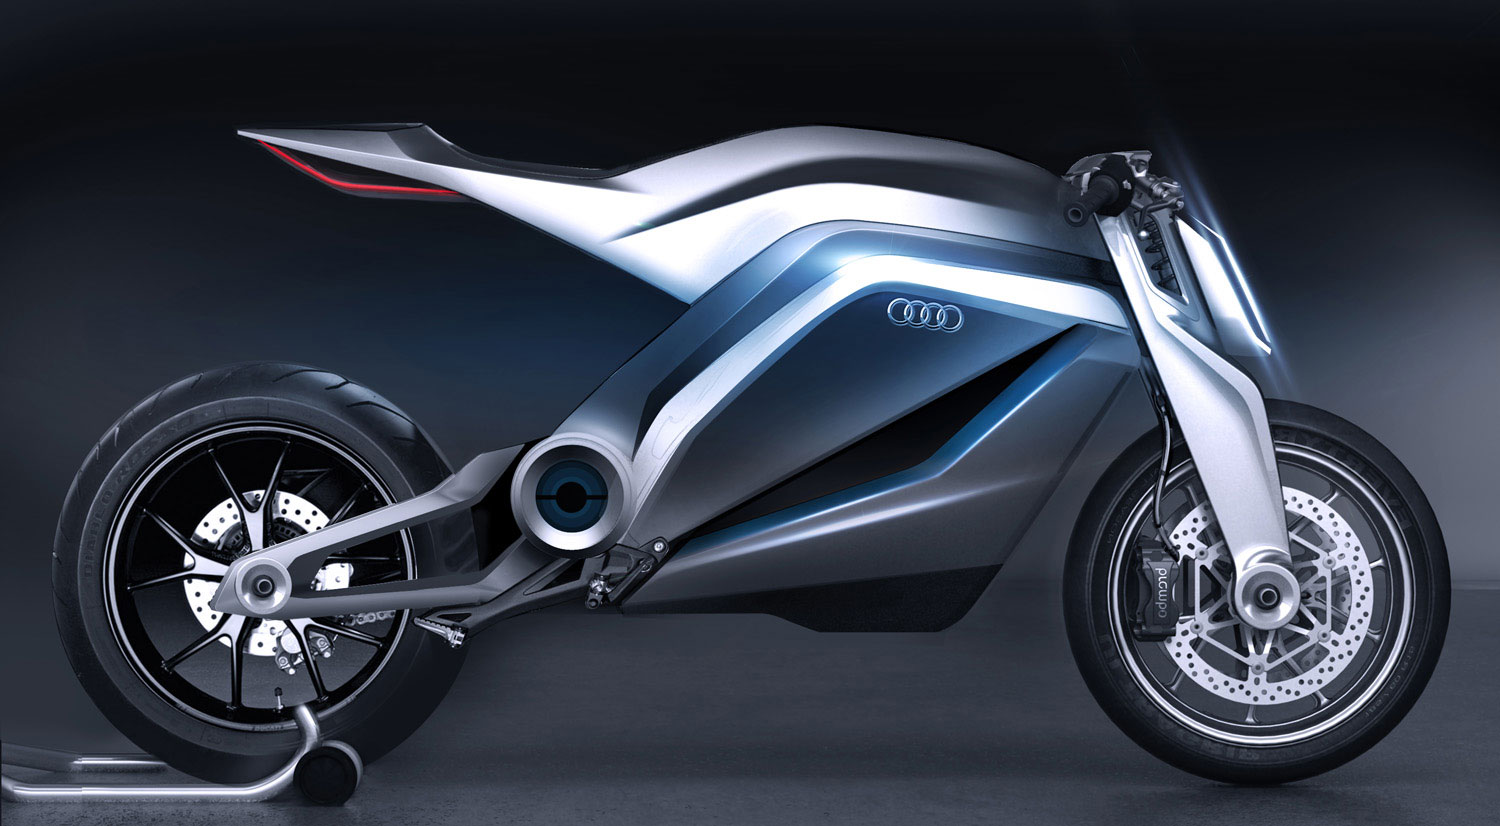 audi shows very cool motorcycle concept autoevolution audi shows very cool motorcycle concept